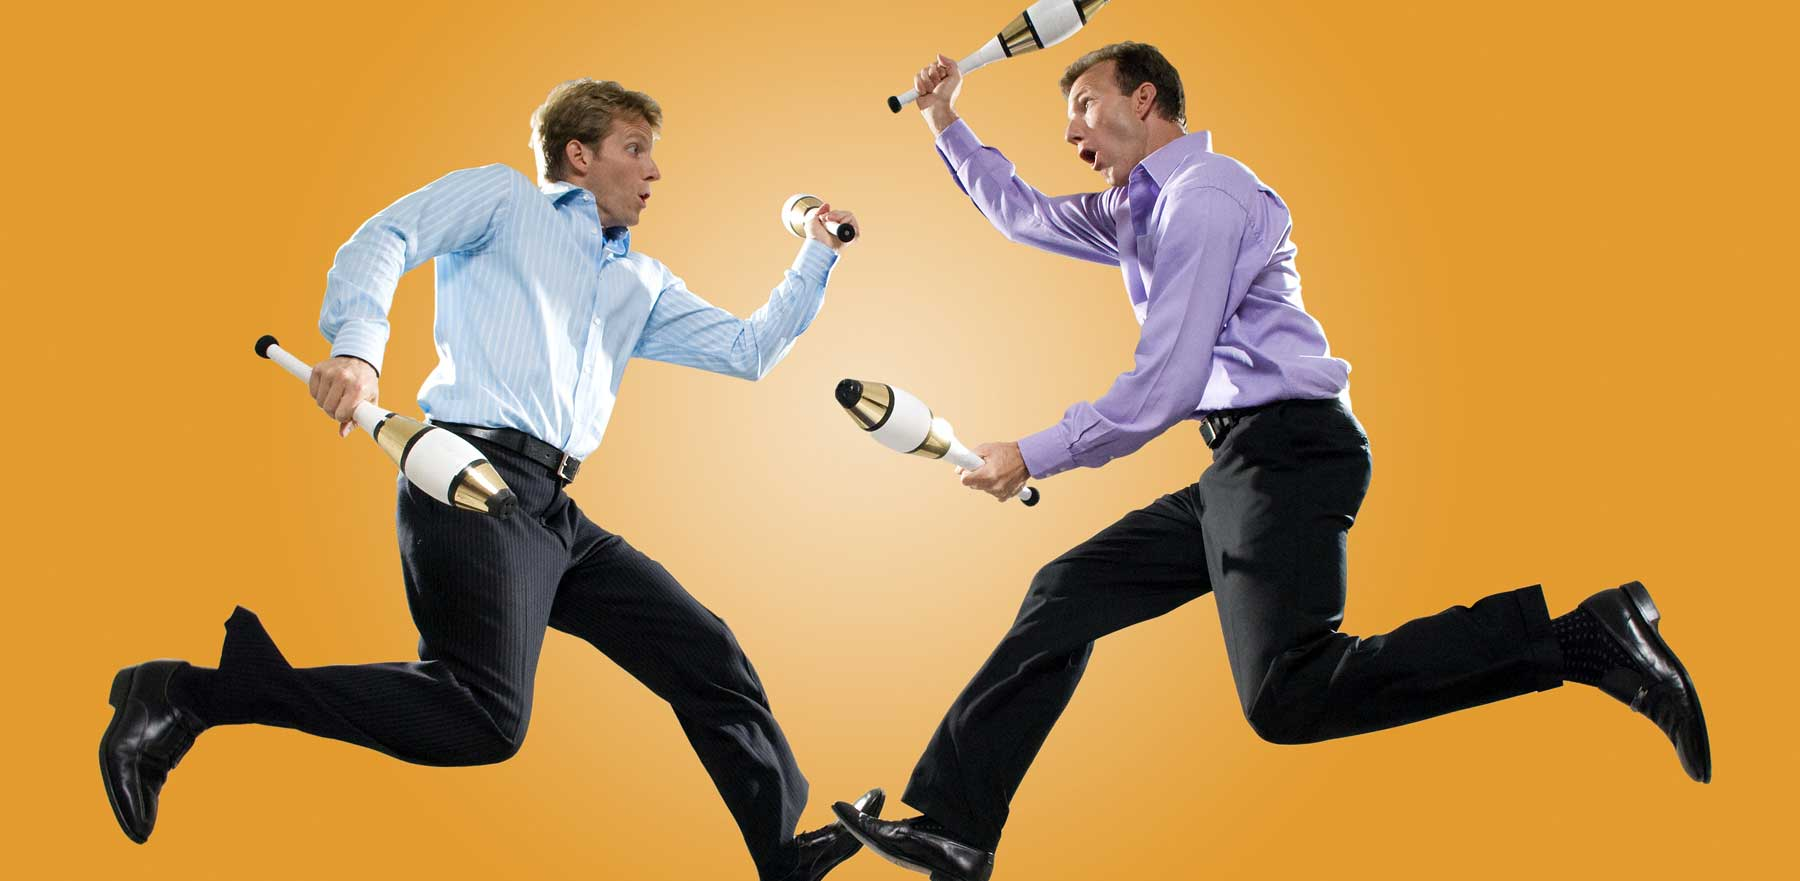 Hire Passing Zone - Corporate Entertainers - Funny Business Agency